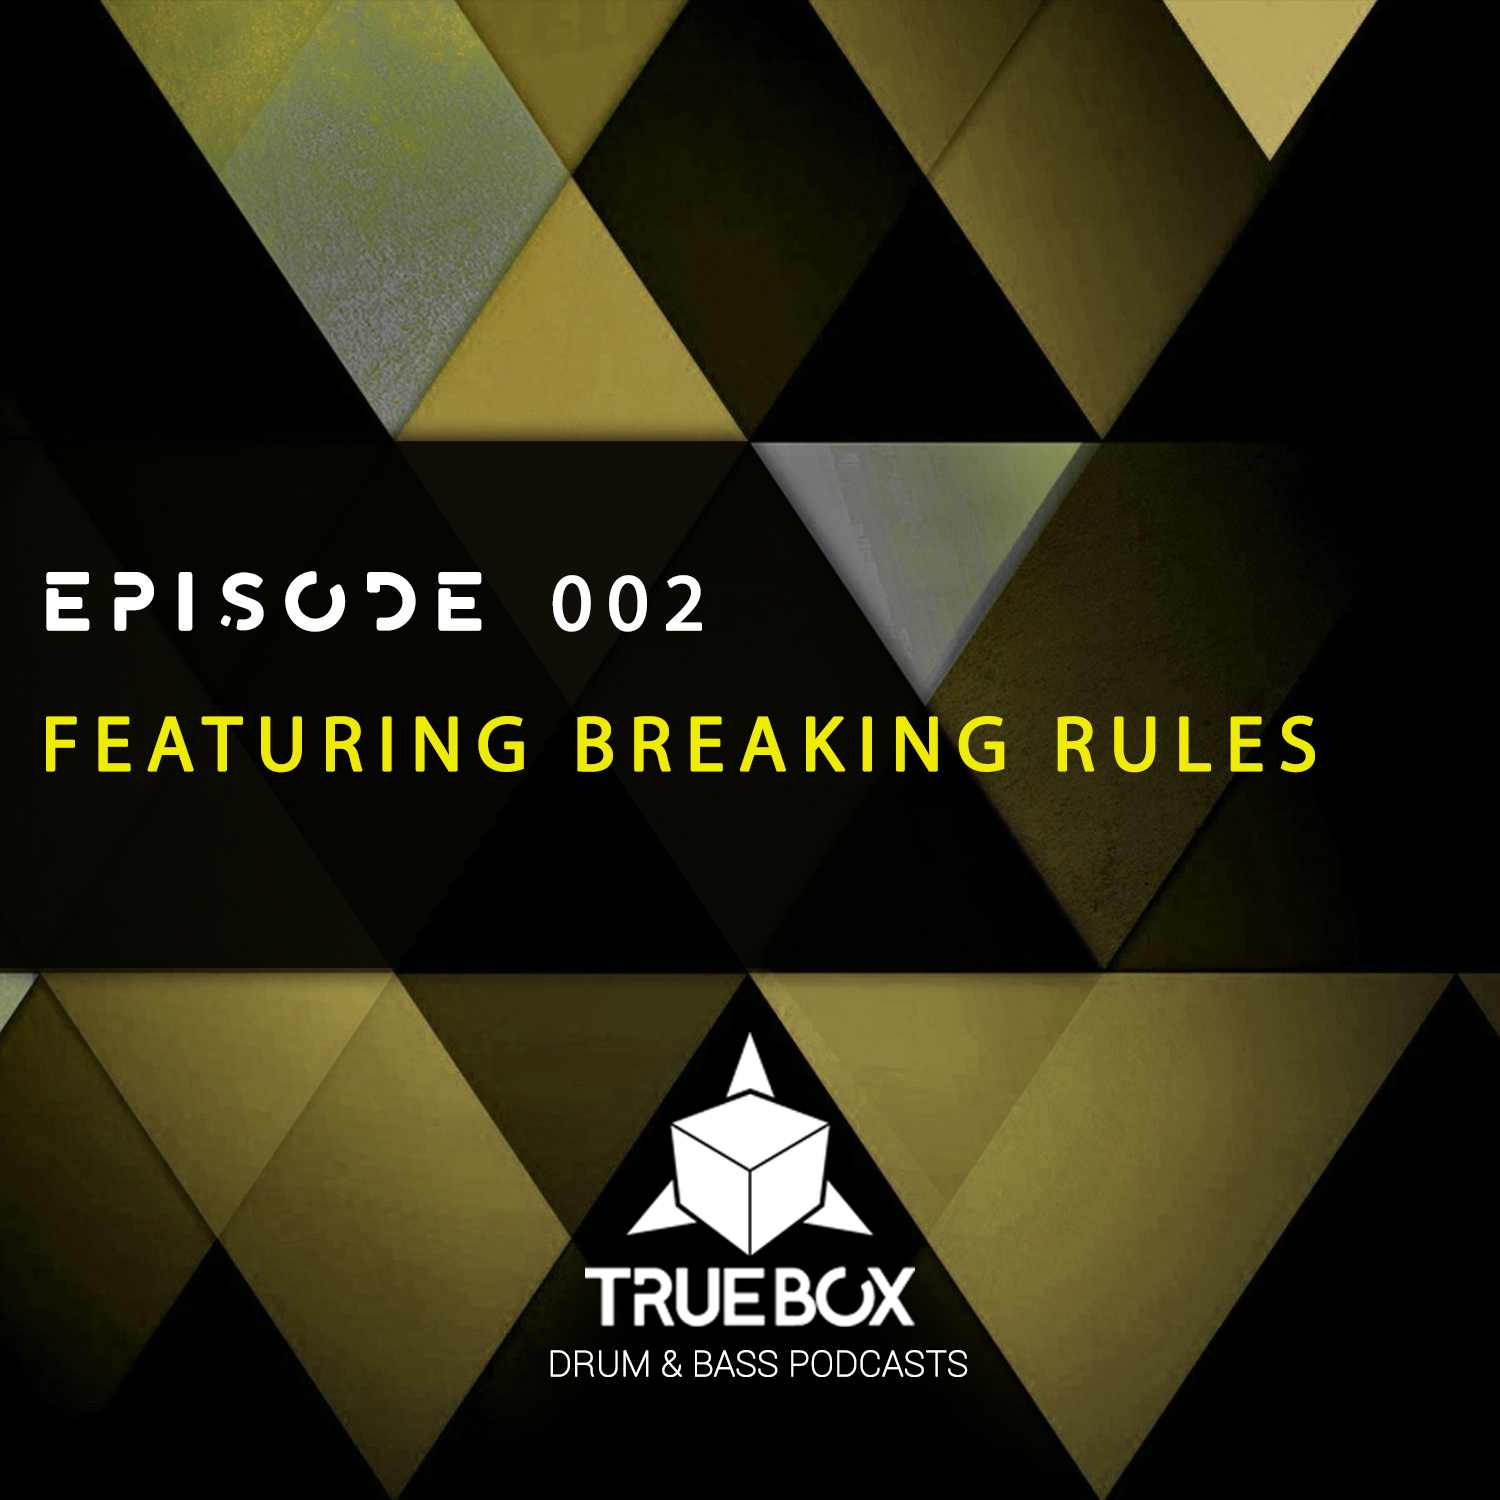 TRUECAST002 BY BREAKING RULES